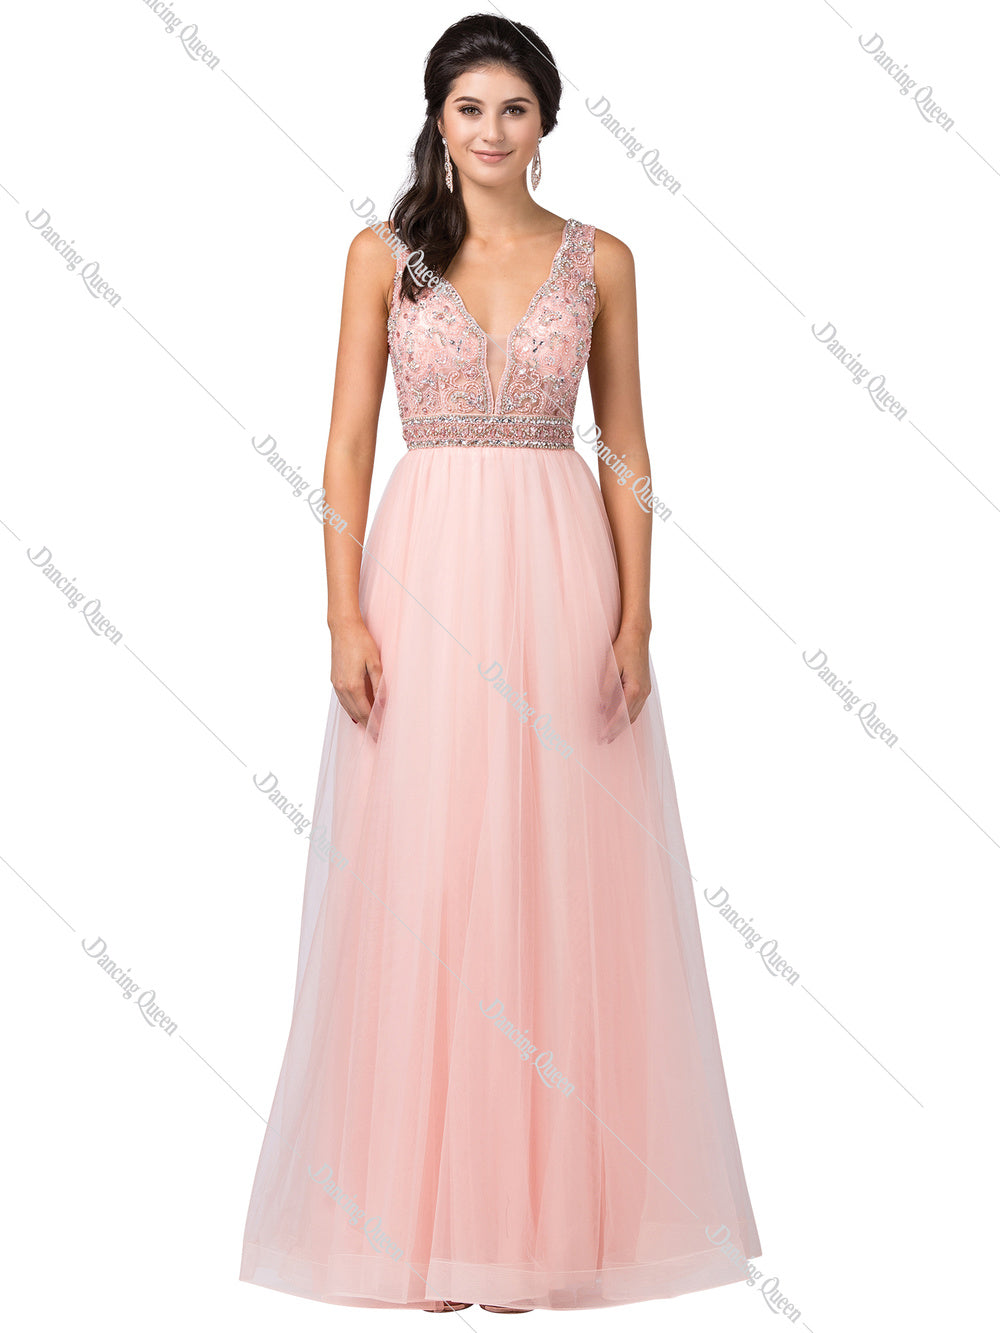 Dancing Queen DQ 2520 - A-line with Bead & Scalloped Trim V-neck and Full Tulle BallGown - Diggz Prom